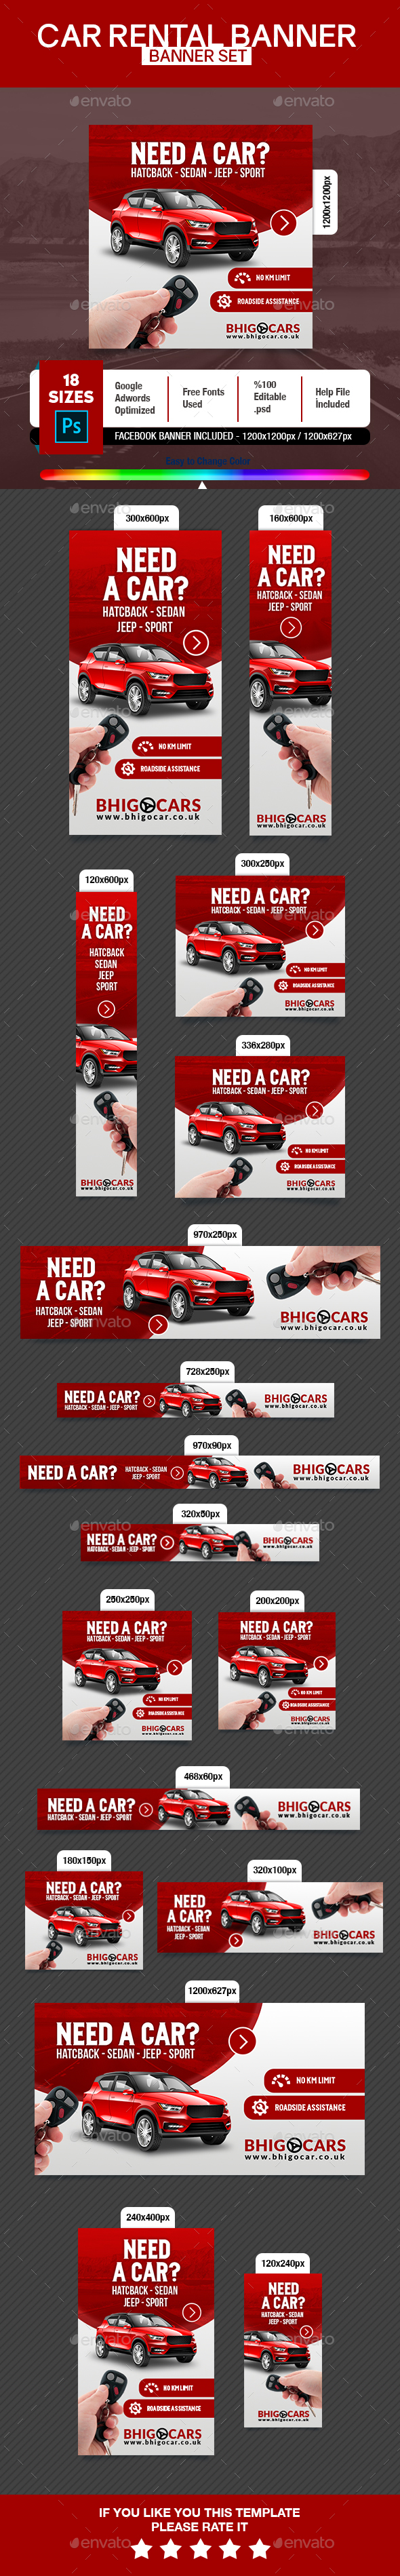 Car Rental Banner - Banners & Ads Web Elements